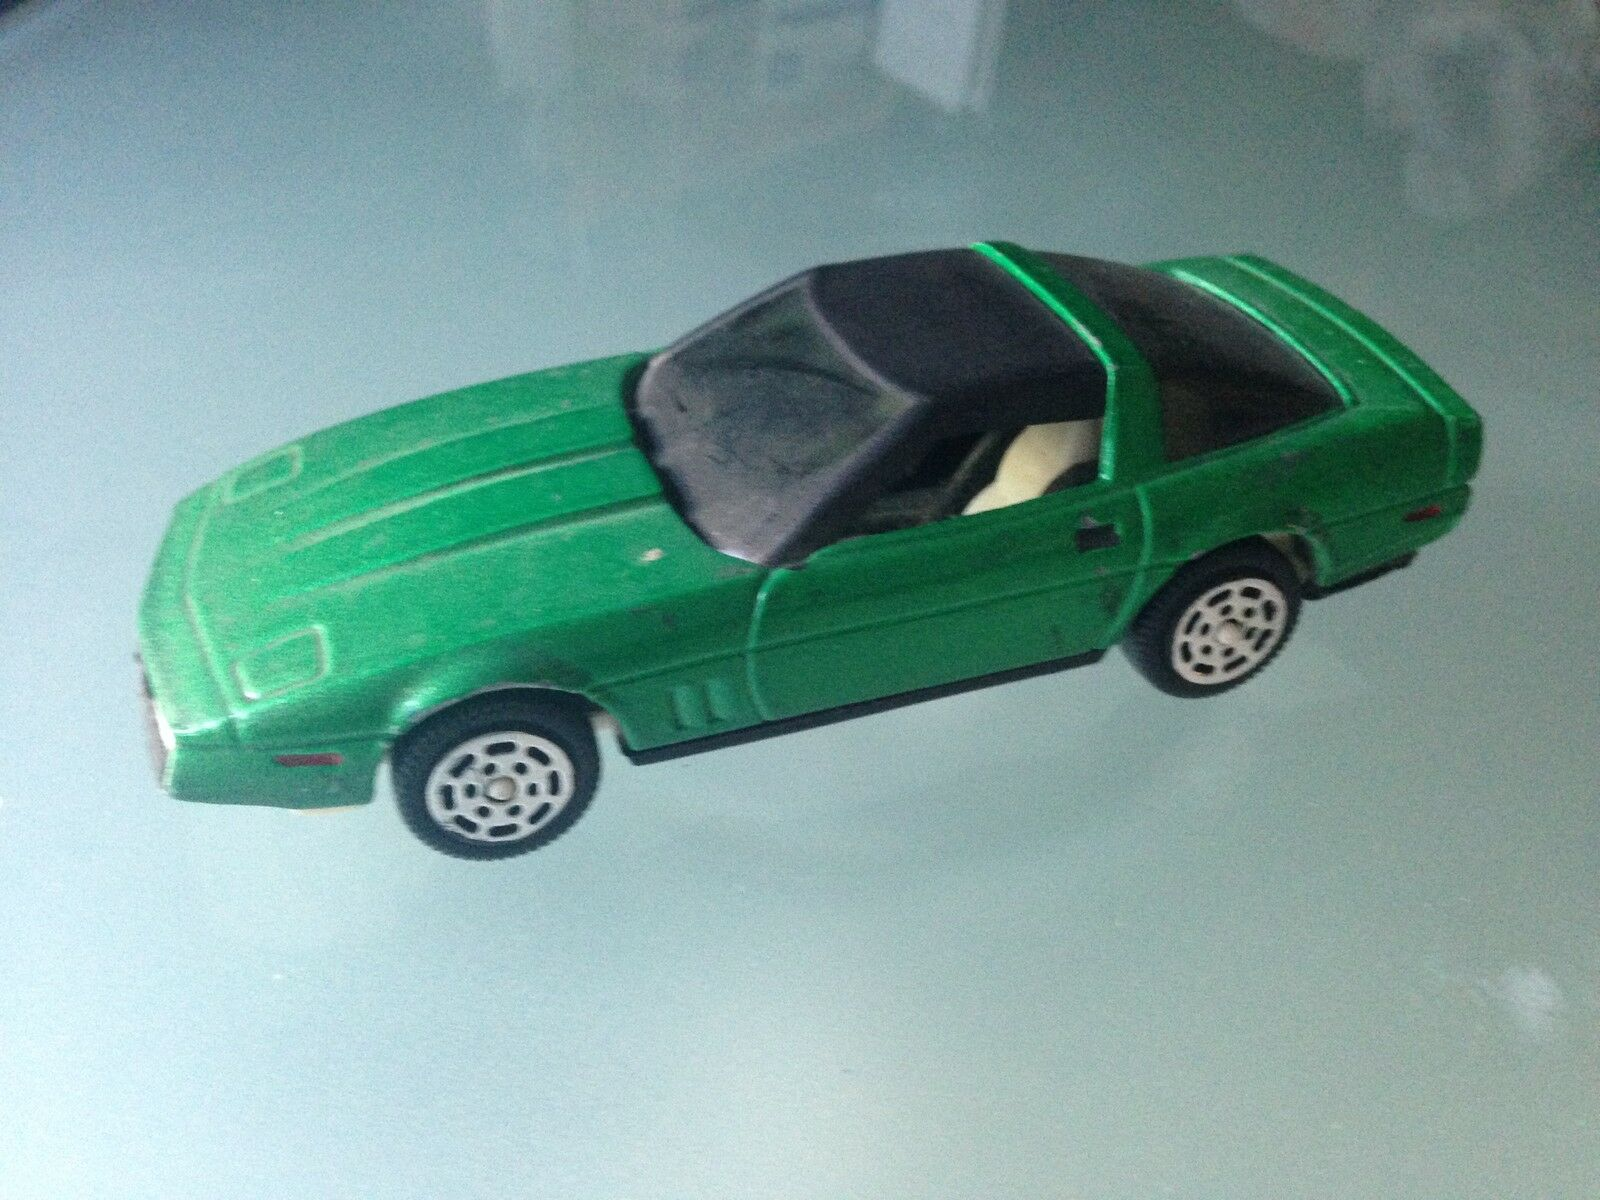 RARE 1 43 SUPER HOT WHEELS MATTEL CHEVROLET CORVETTE